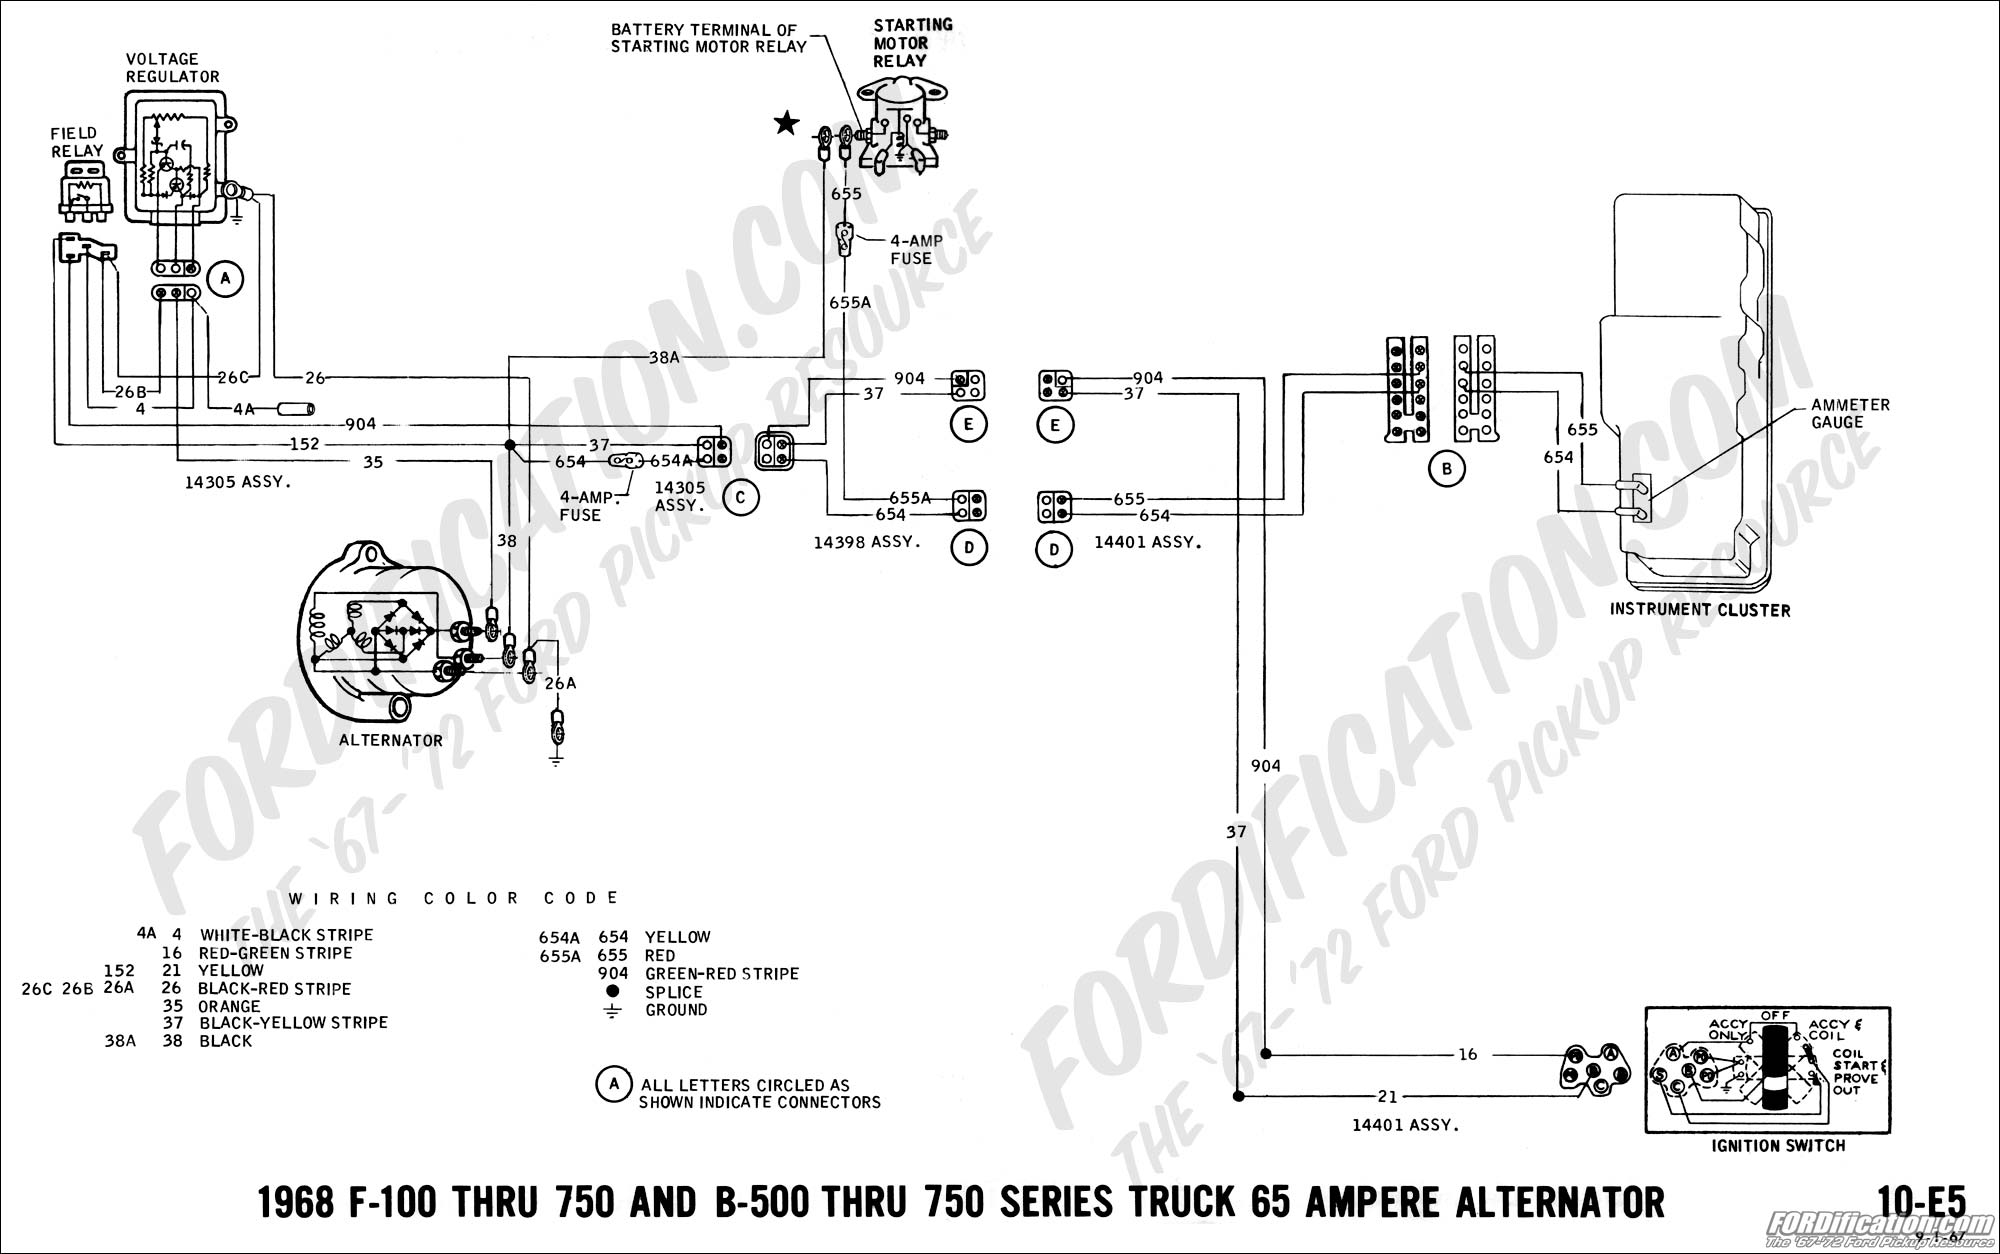 1969 ford alternator wiring diagram ford truck technical drawings and schematics section h wiring 1968 f 100 thru f 750 and